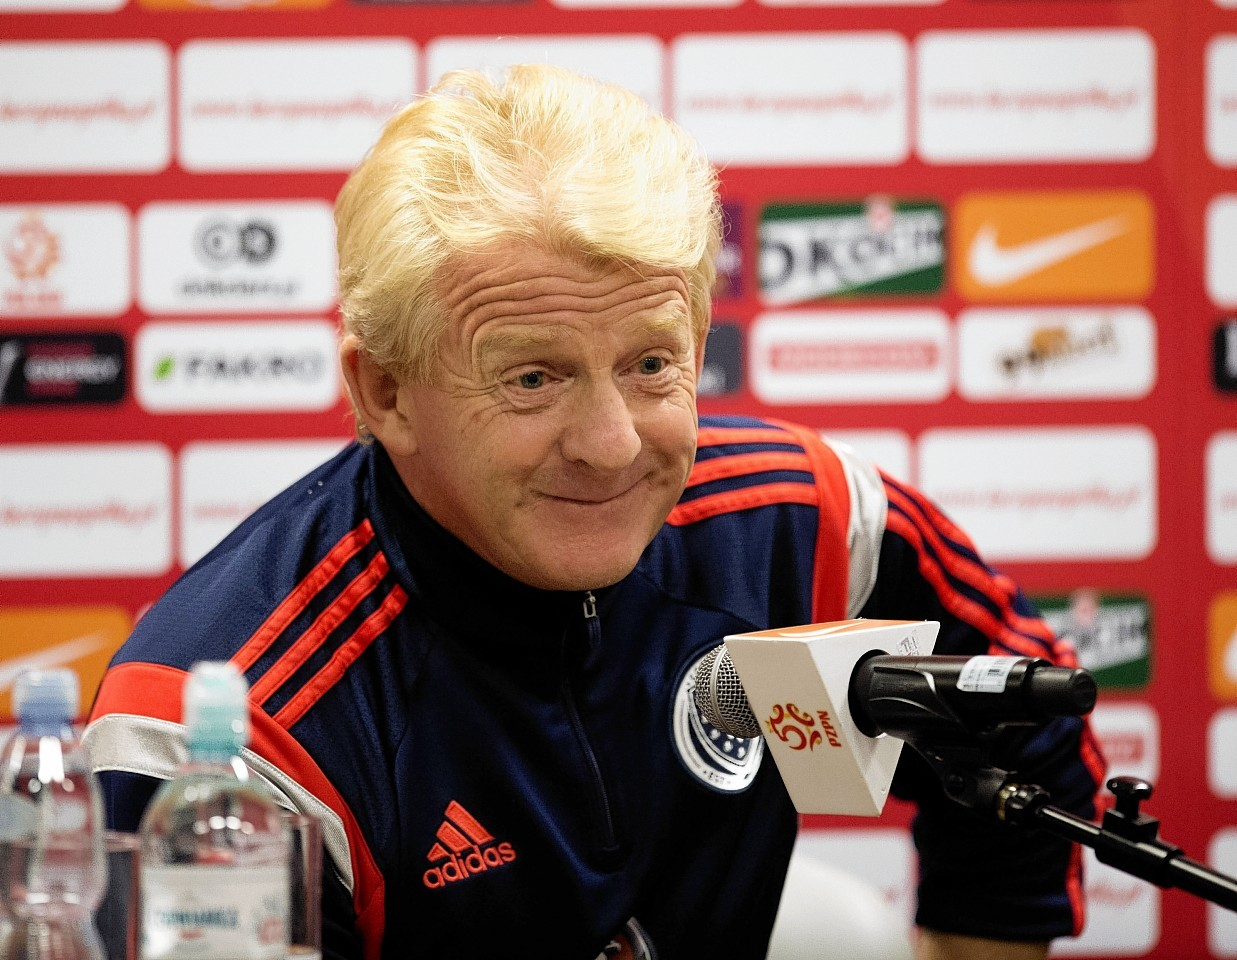 Gordon Strachan has handed a first call up to Bournemouth's Matt Ritchie